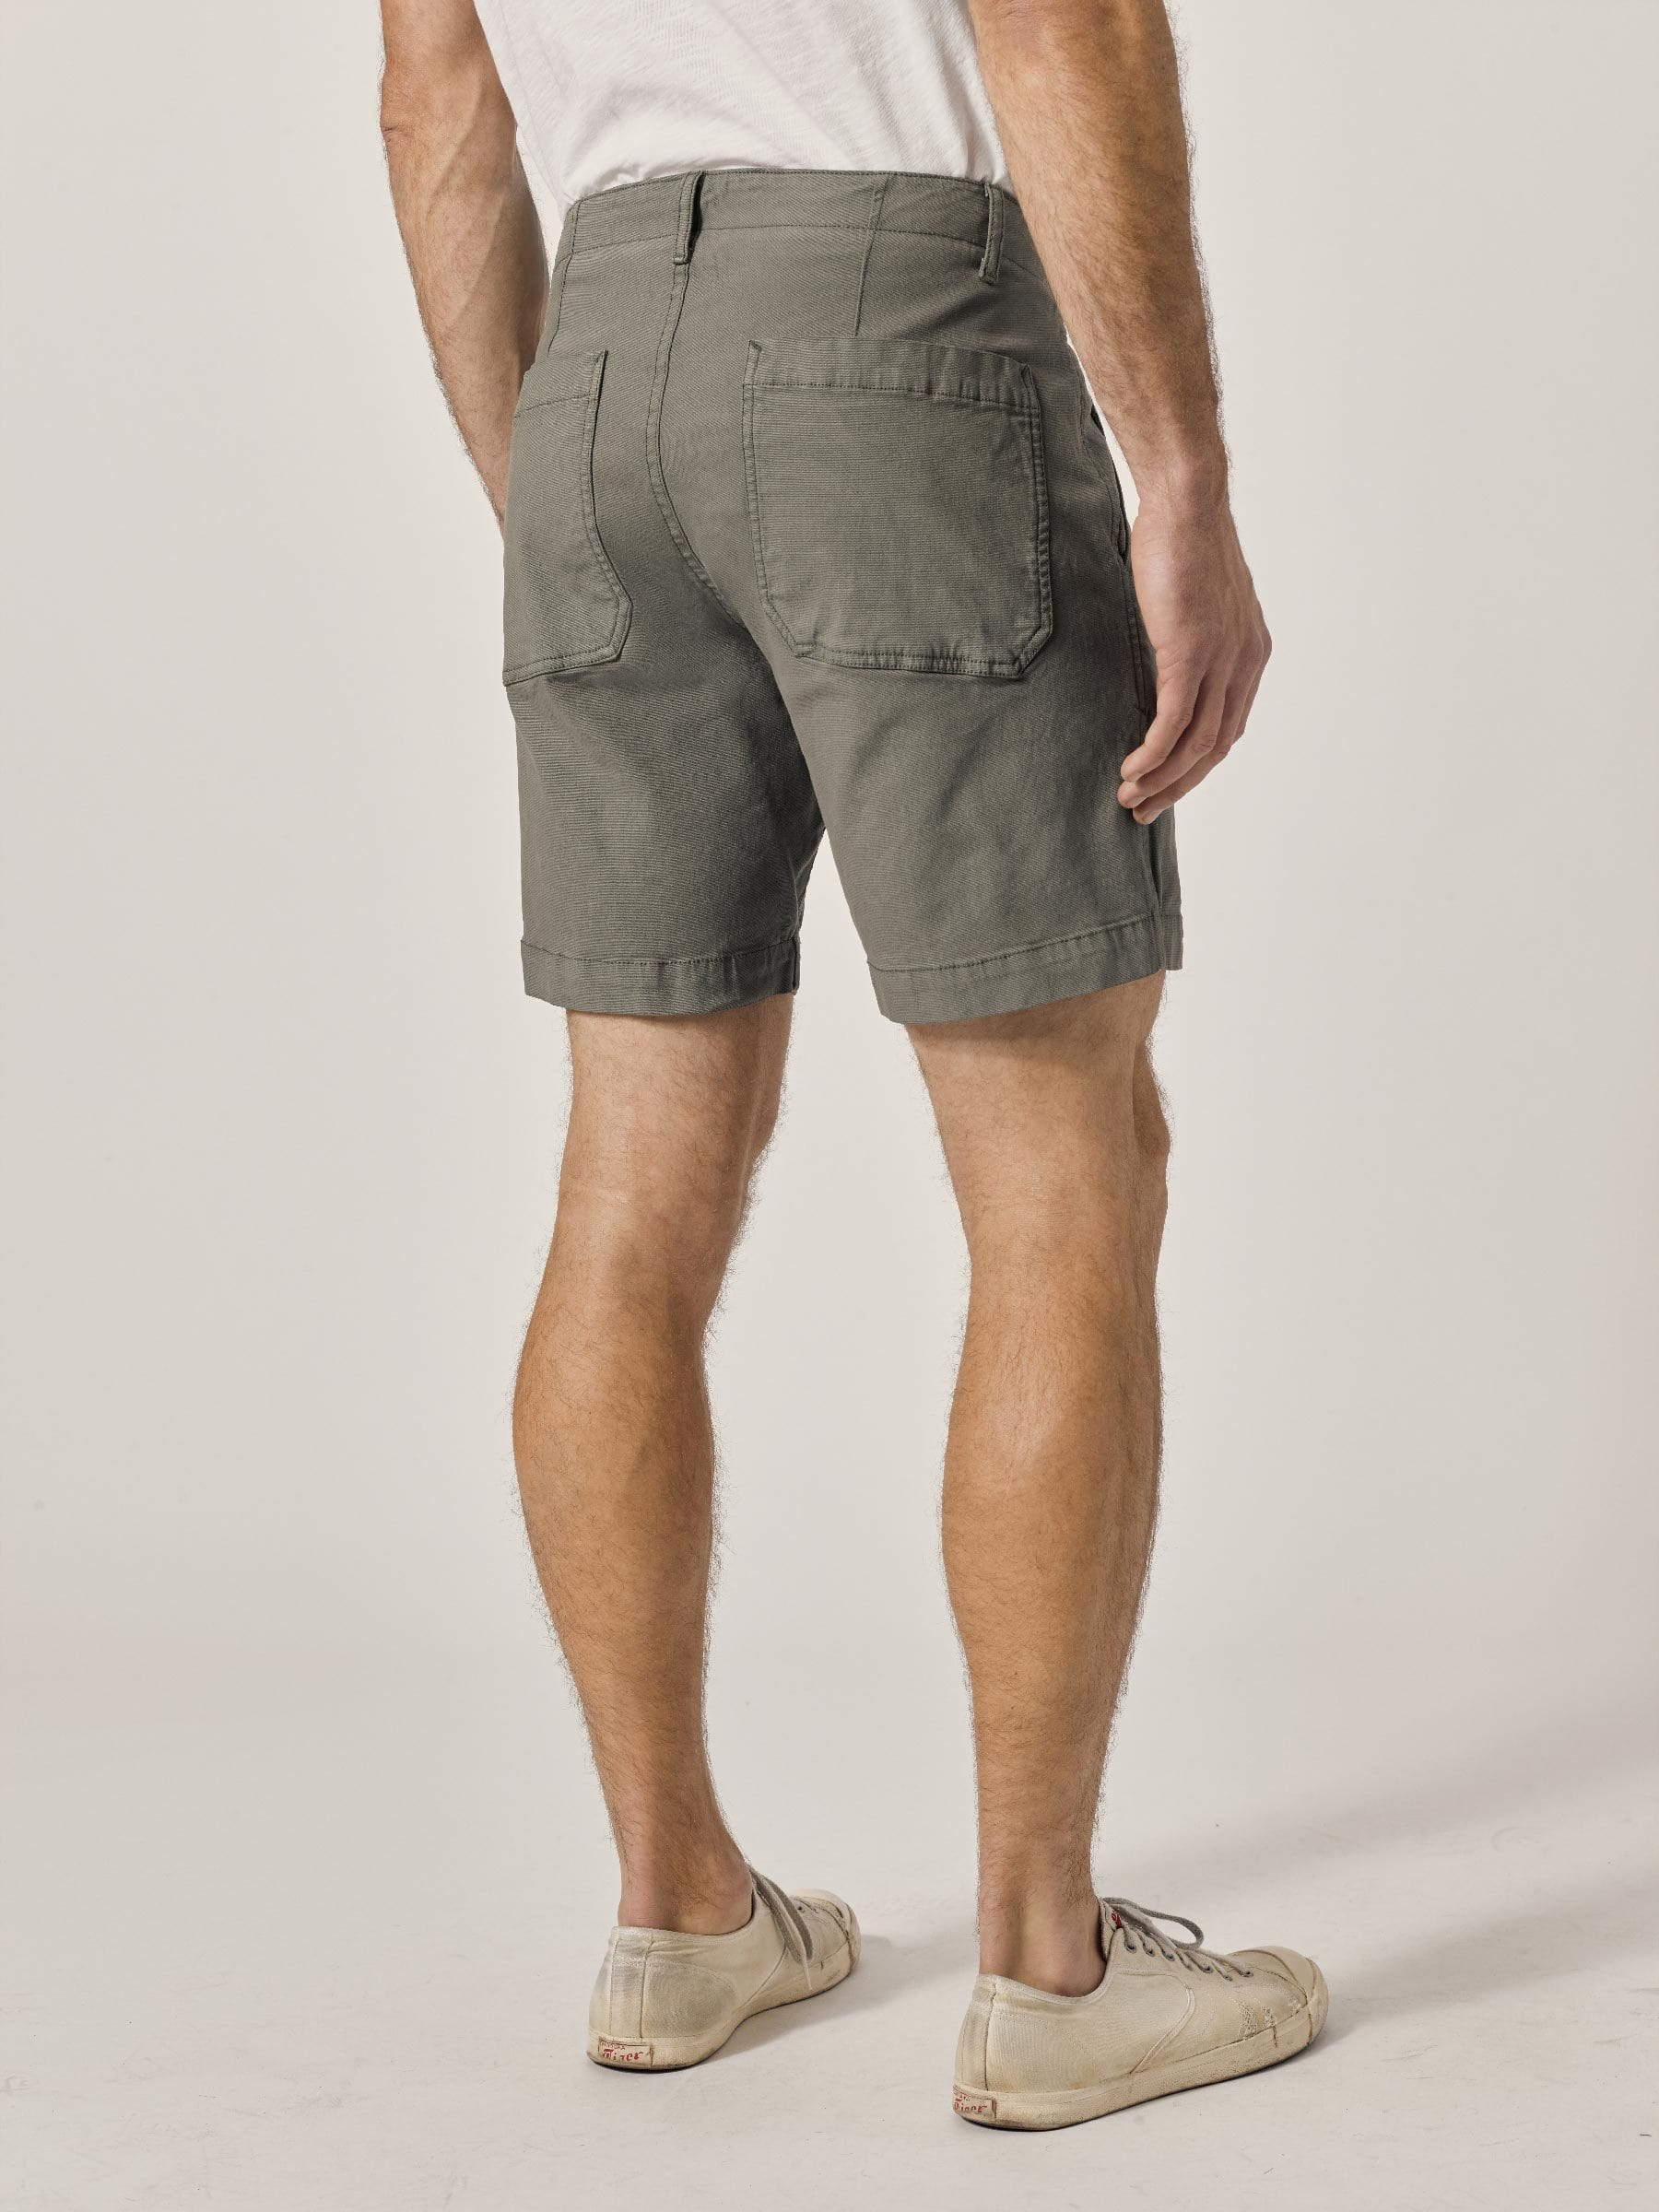 Buck Mason - Moss Vintage Canvas Walk Short